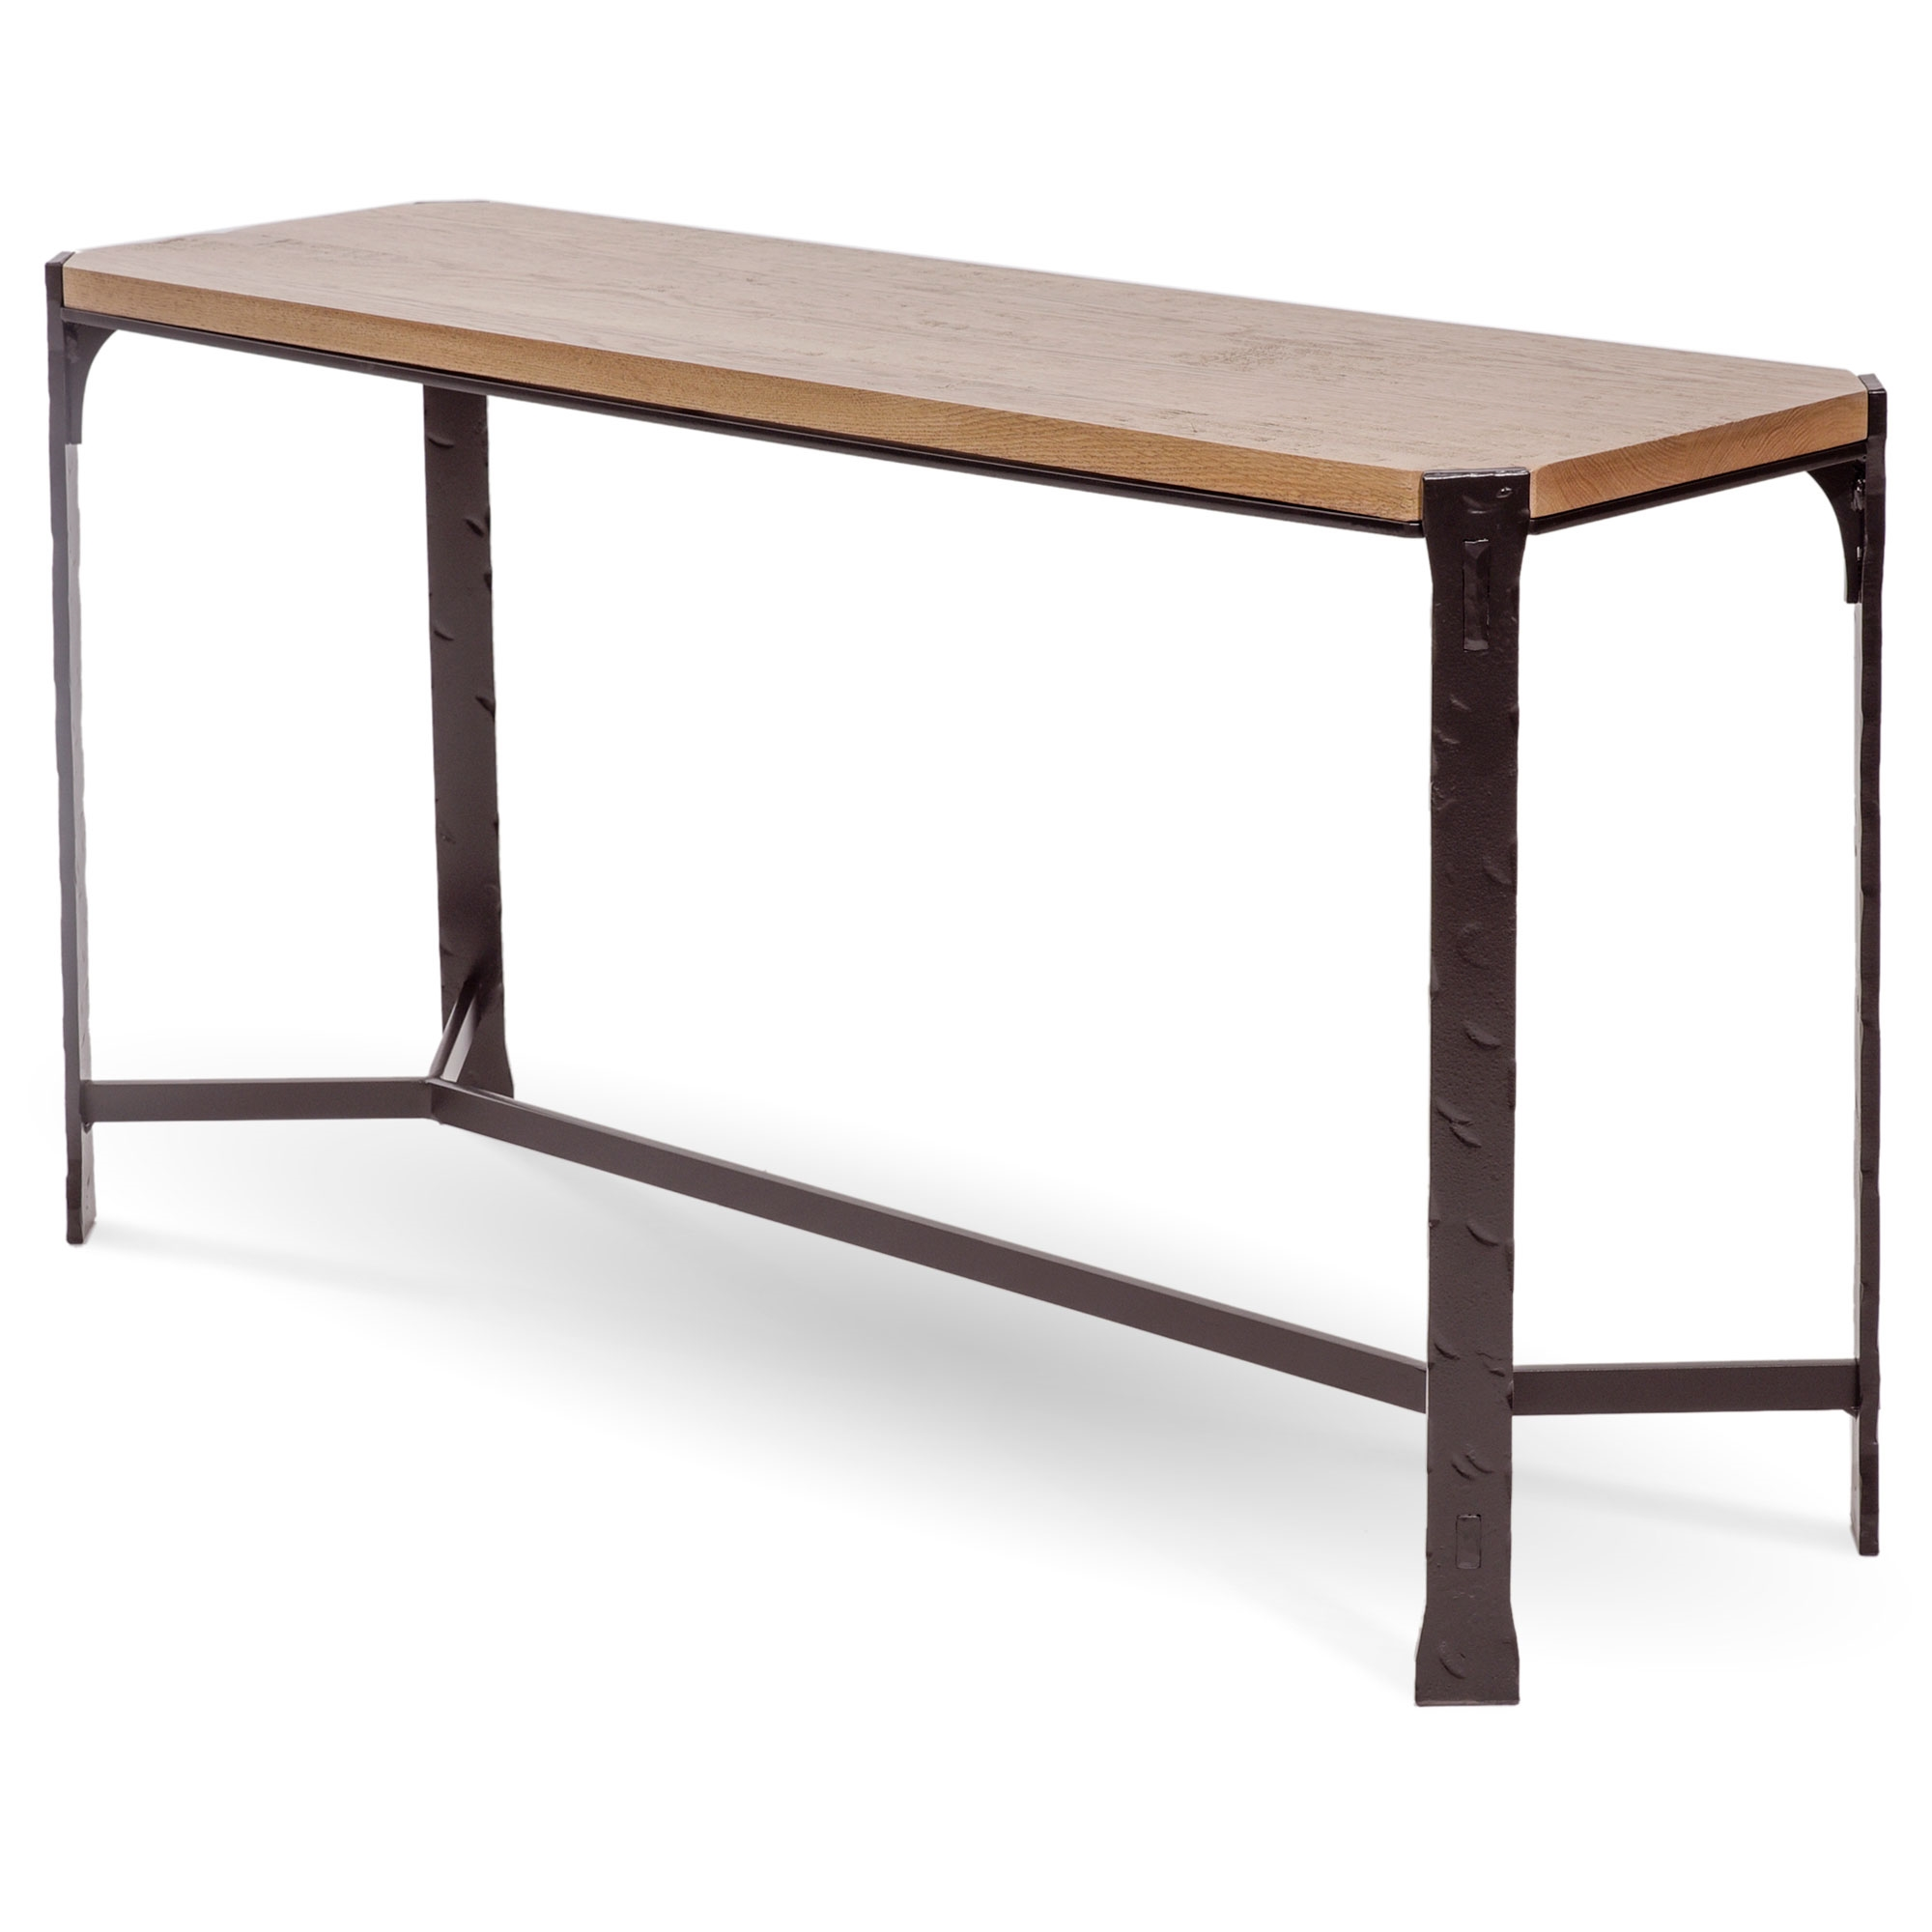 Pictured Here Is The Woodland Console Table With A